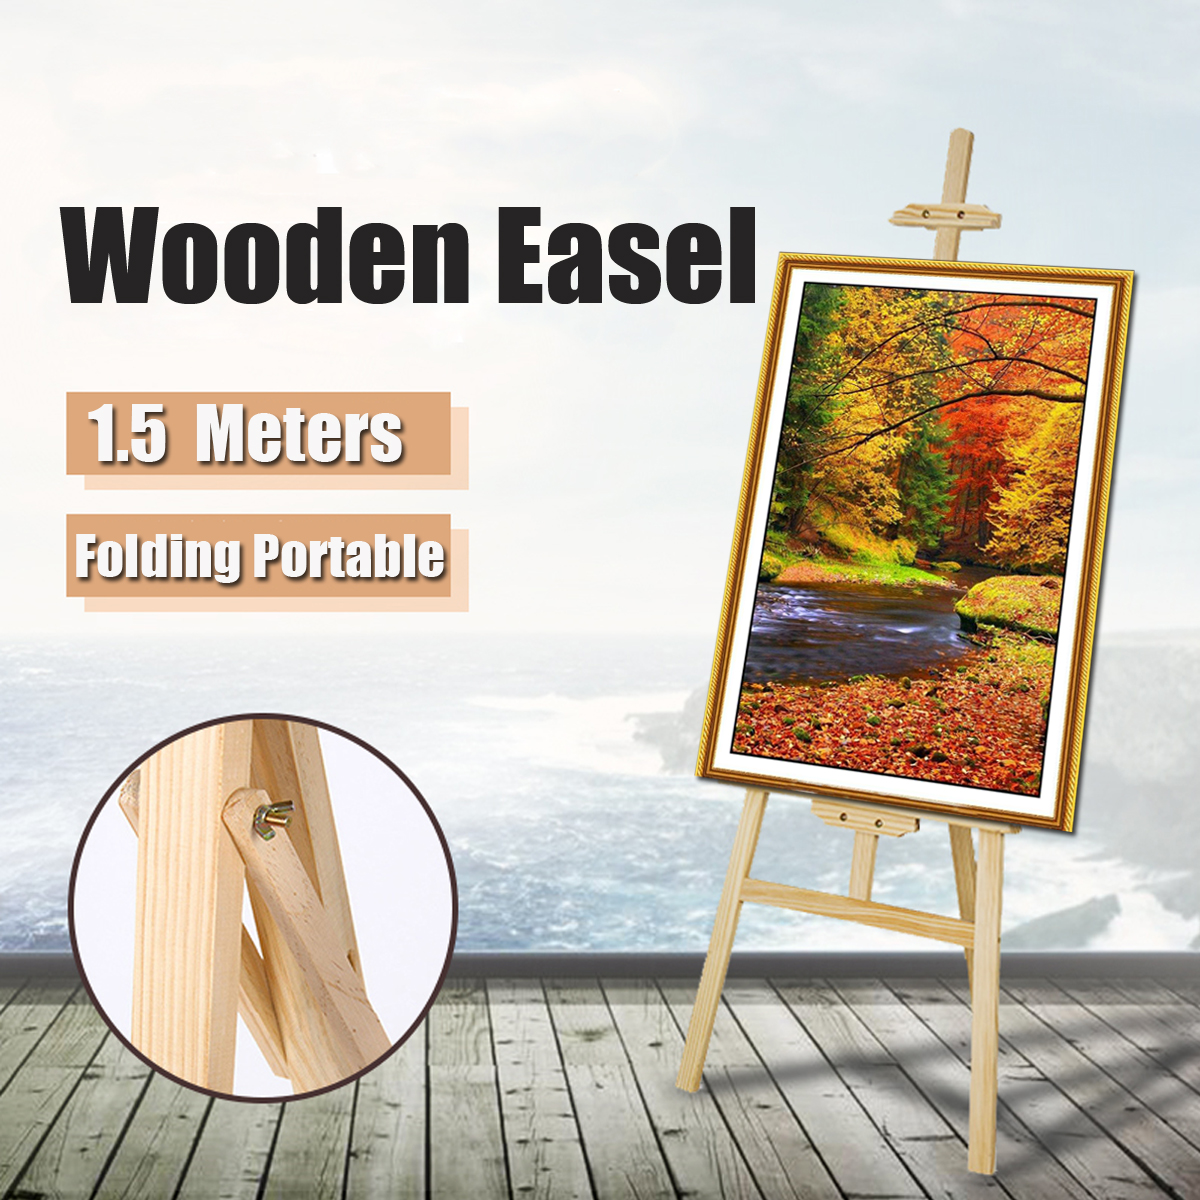 Artist Wooden Easel Wood Wedding Table Card Stand Advertising Display Holder For Party Decoration 150*57cm Triange Easel pccooler s126 4pin pwm 12cm 10pcs led fan 5 8mm heatpipes all black cpu cooler amd intel cpu cooling ratidor fan quiet silent